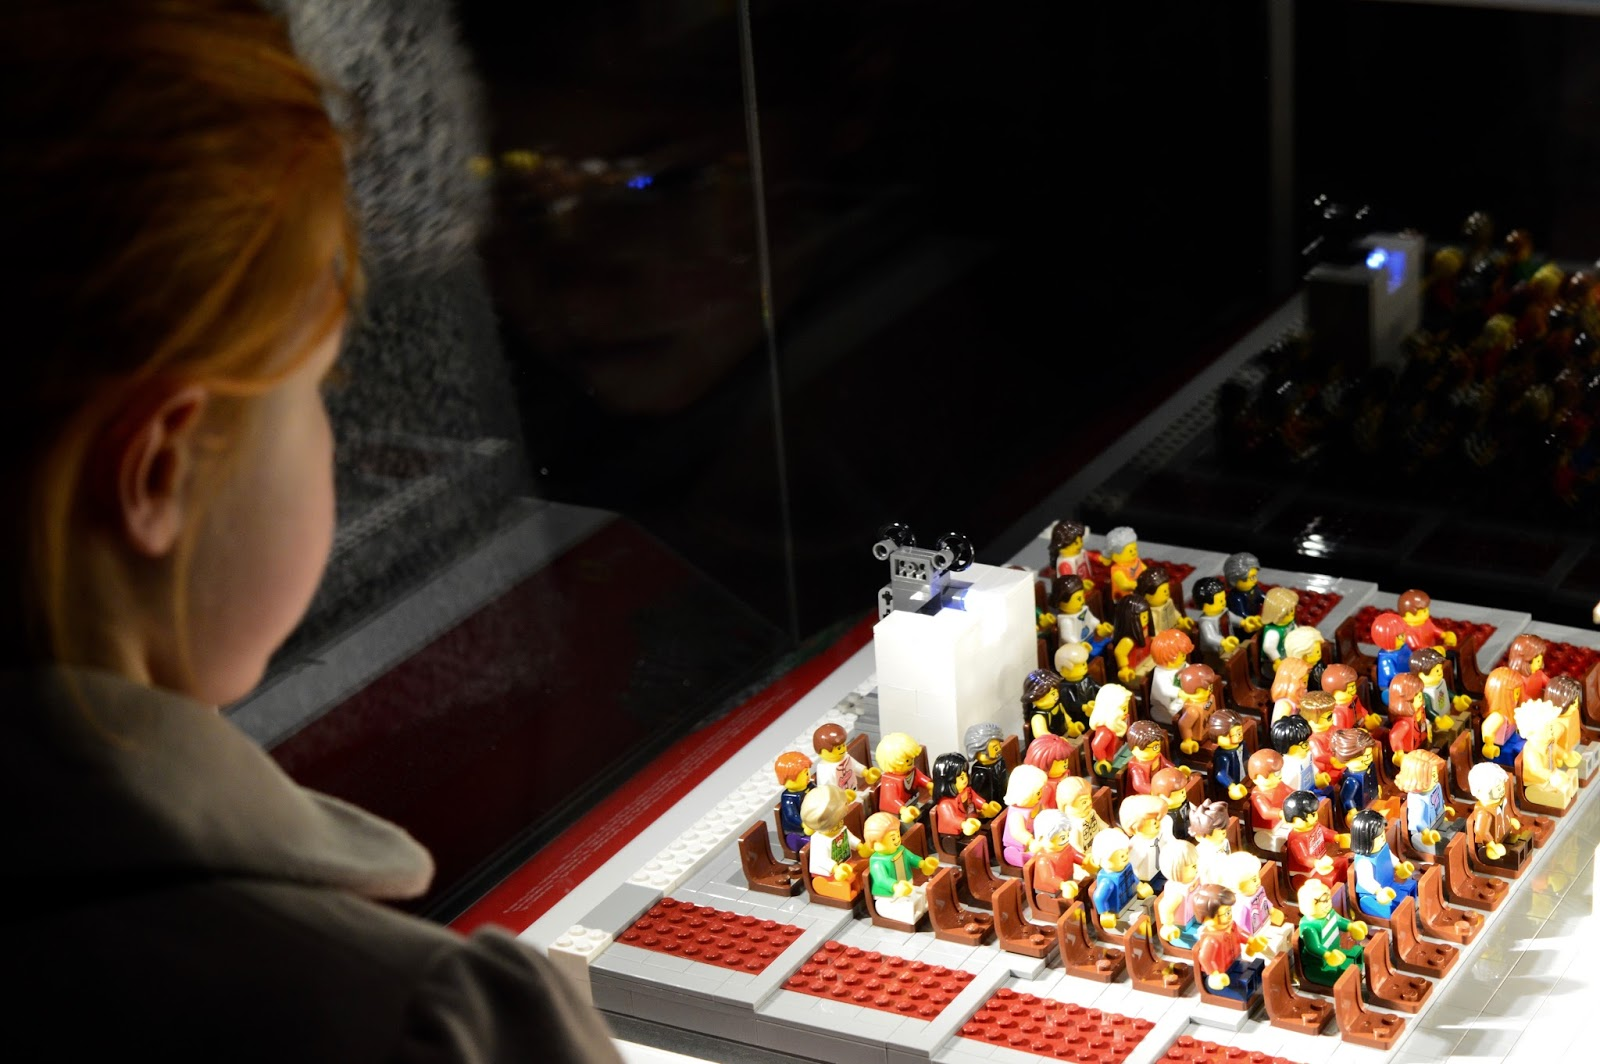 Brick History & North East Landmarks | New Lego Exhibitions at Life Science Centre, Newcastle | A Review - the first talkie